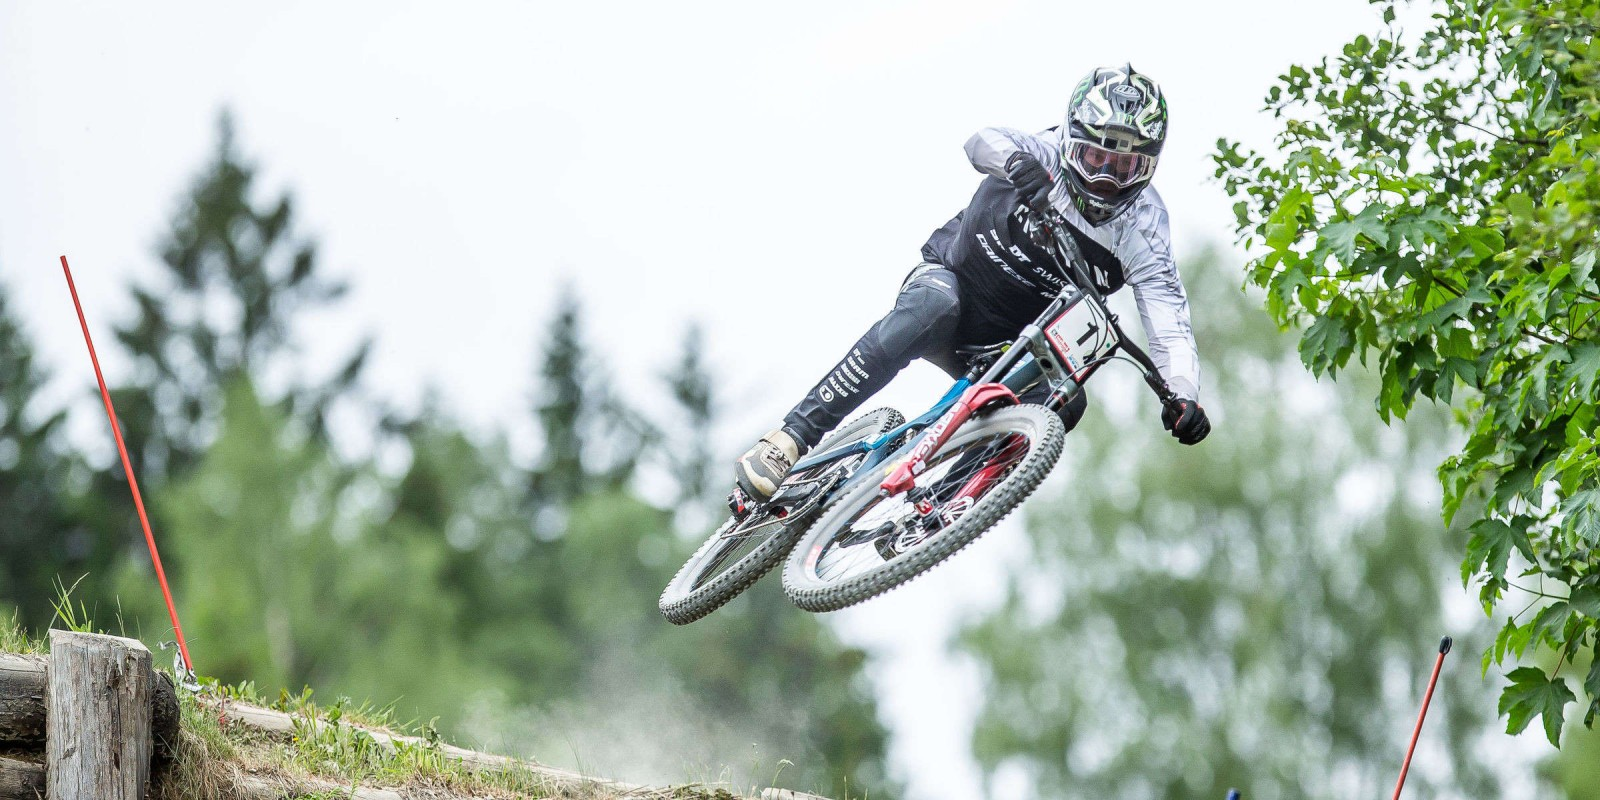 Gallery from the MTB World Cup in Leogang, Austria